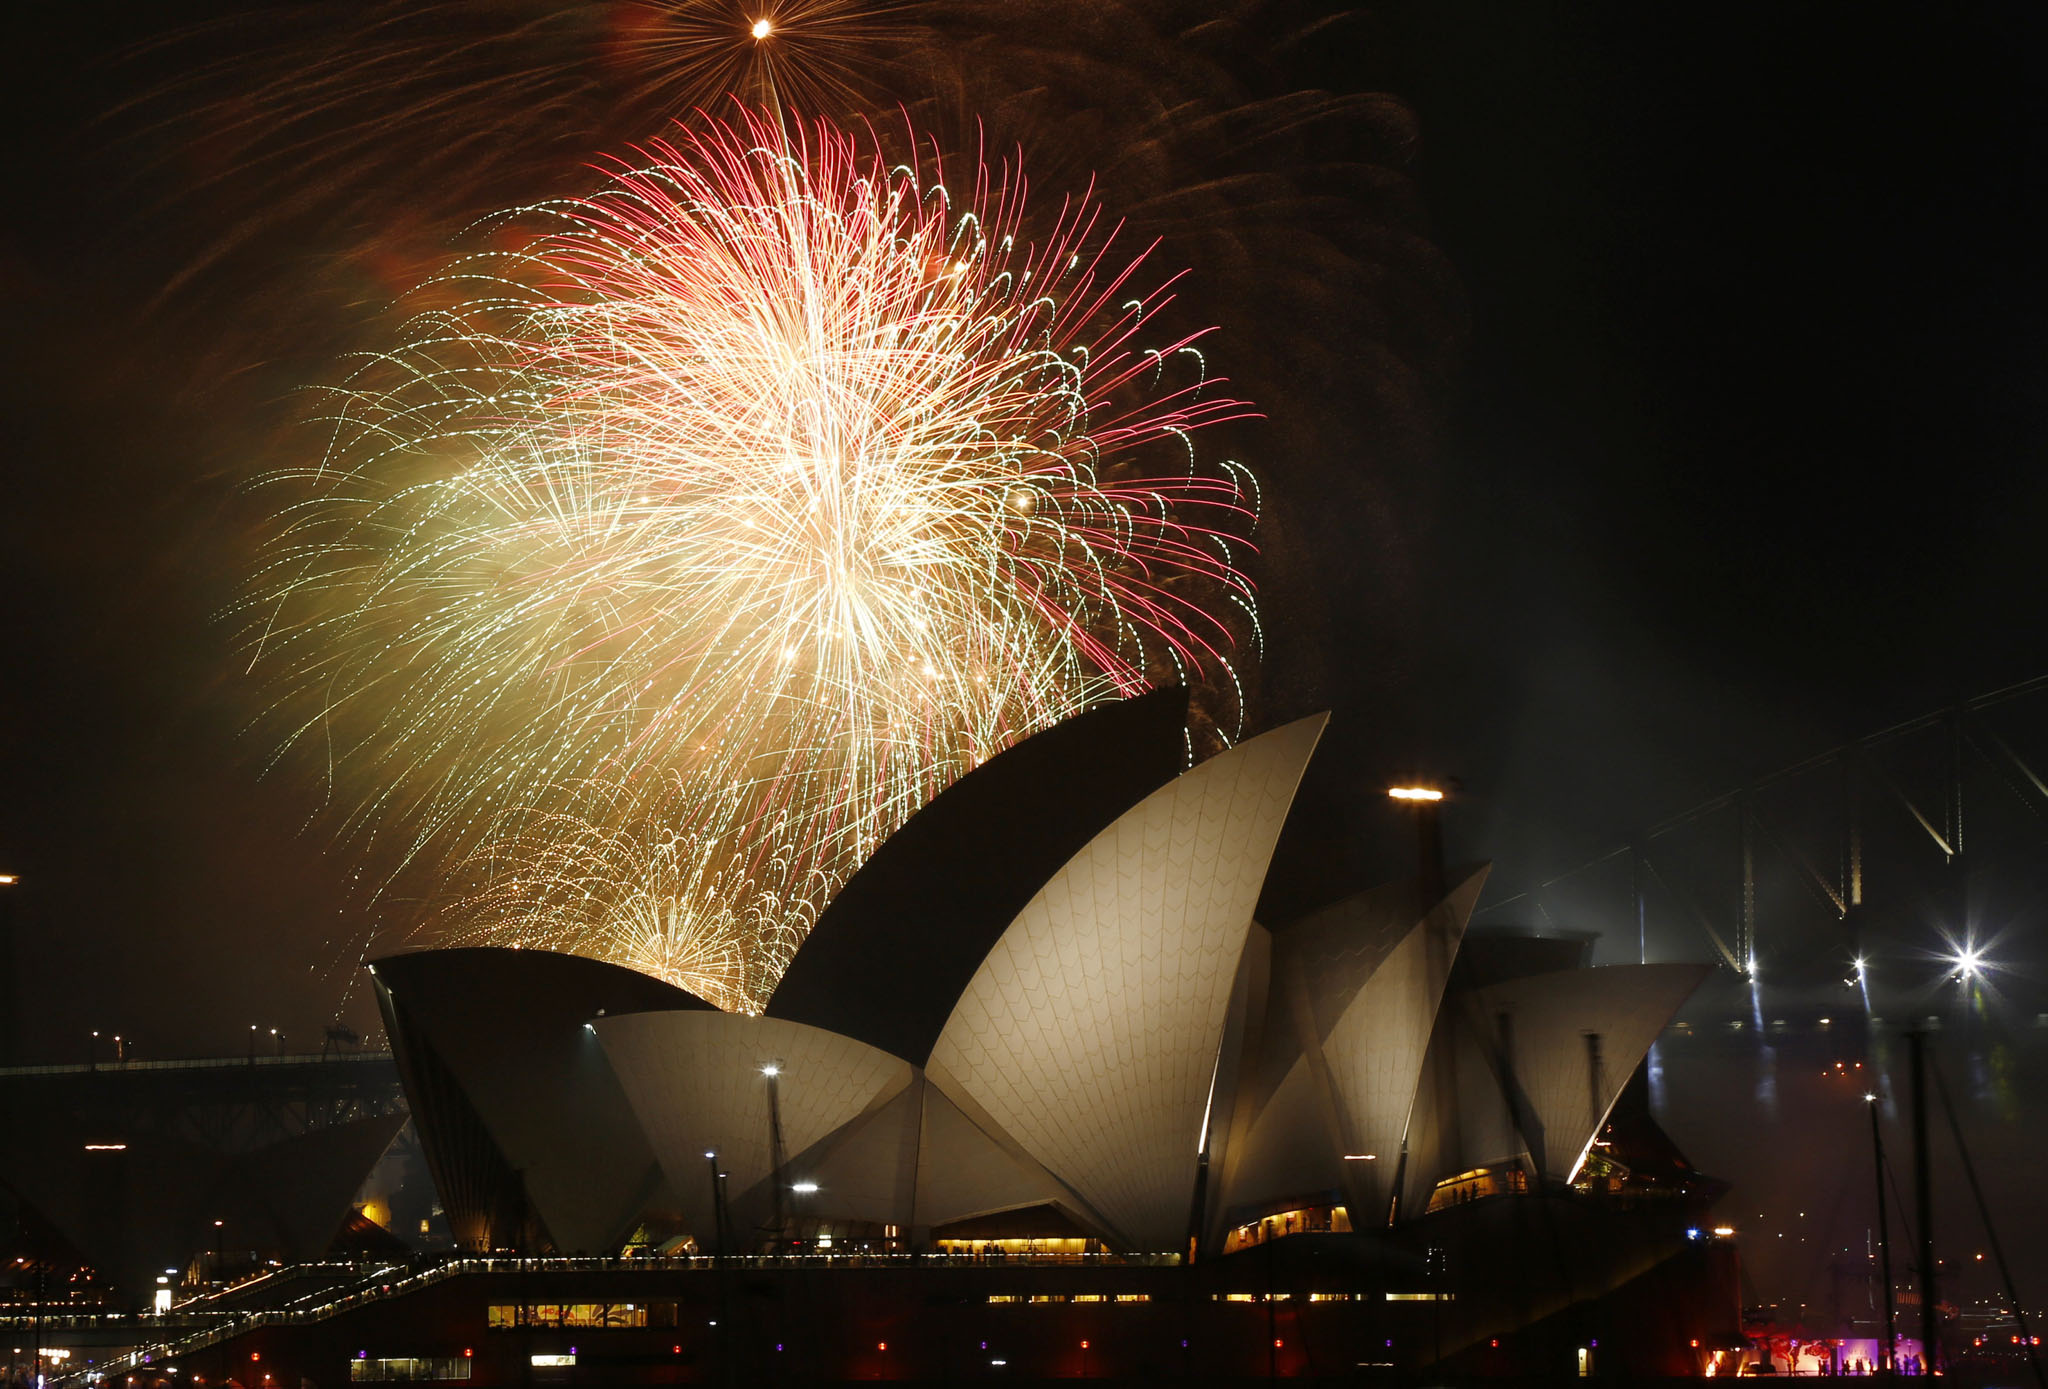 Fireworks explode over the Sydney Opera House in a 9pm display before the midnight fireworks which will usher in the new year in Australia's largest city...Fireworks explode over the Sydney Opera House in a 9pm display before the midnight fireworks which will usher in the new year in Australia's largest city, December 31, 2015. REUTERS/Jason Reed